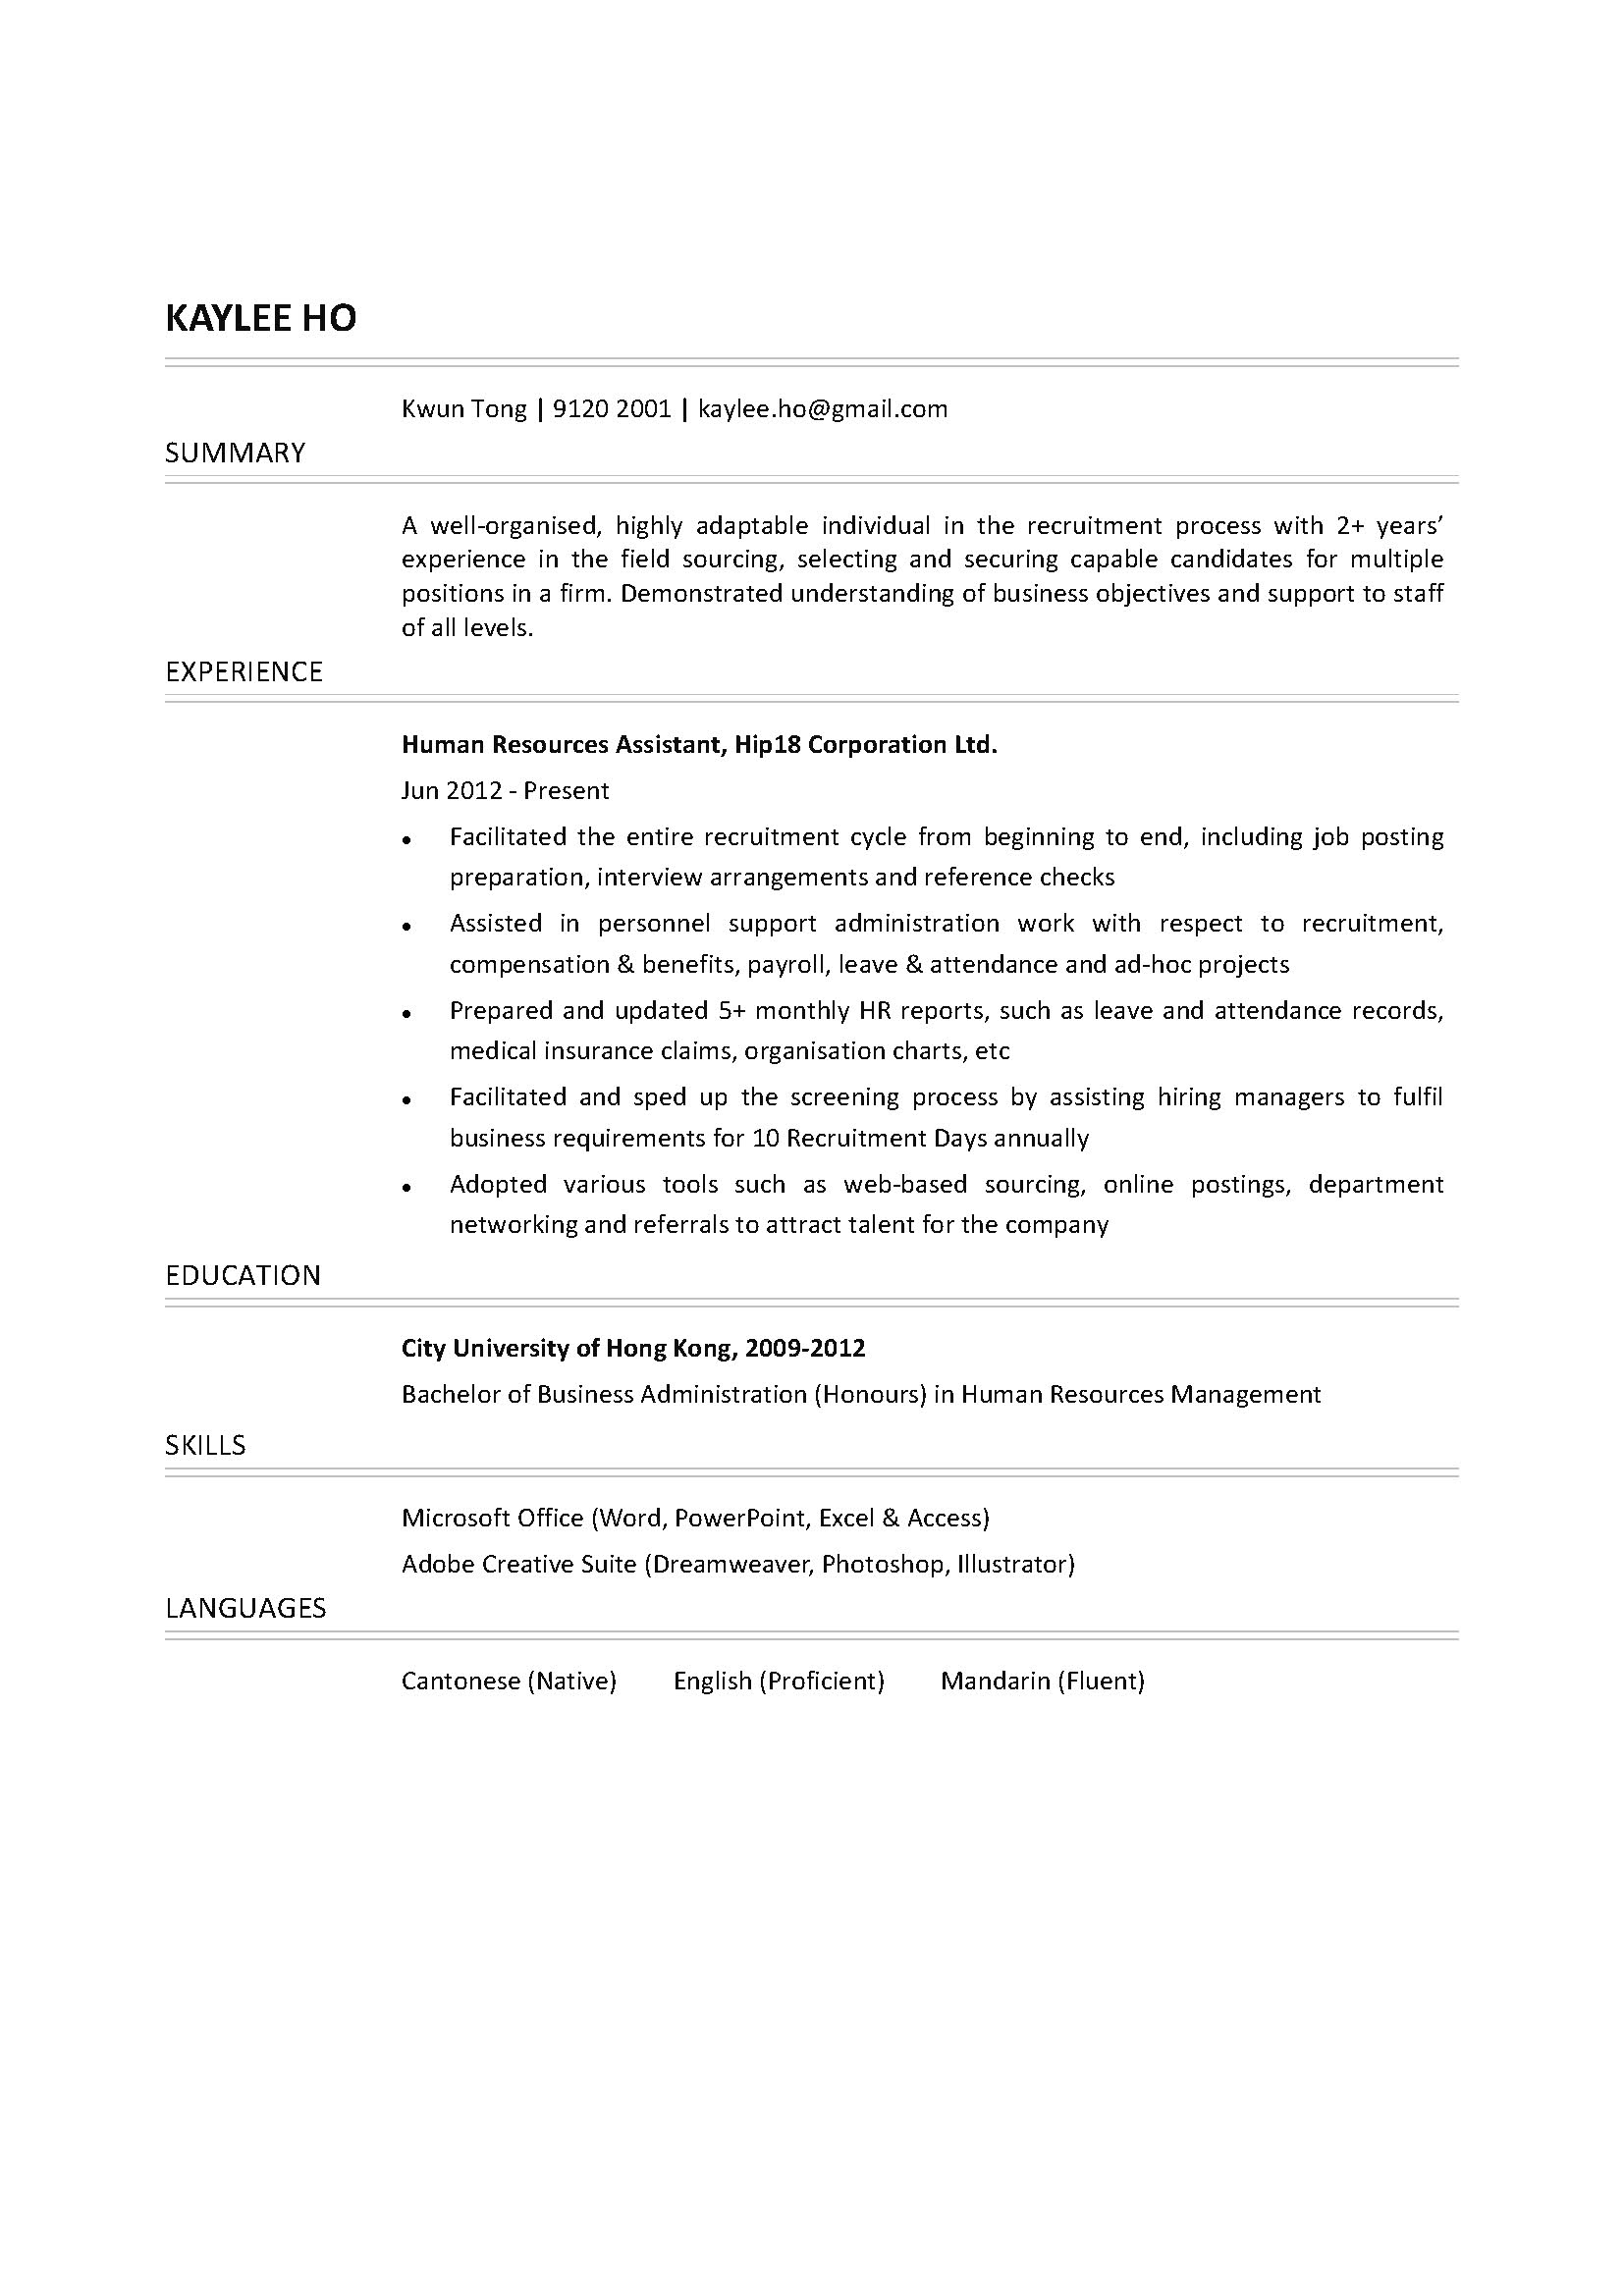 Human Resources Assistant CV